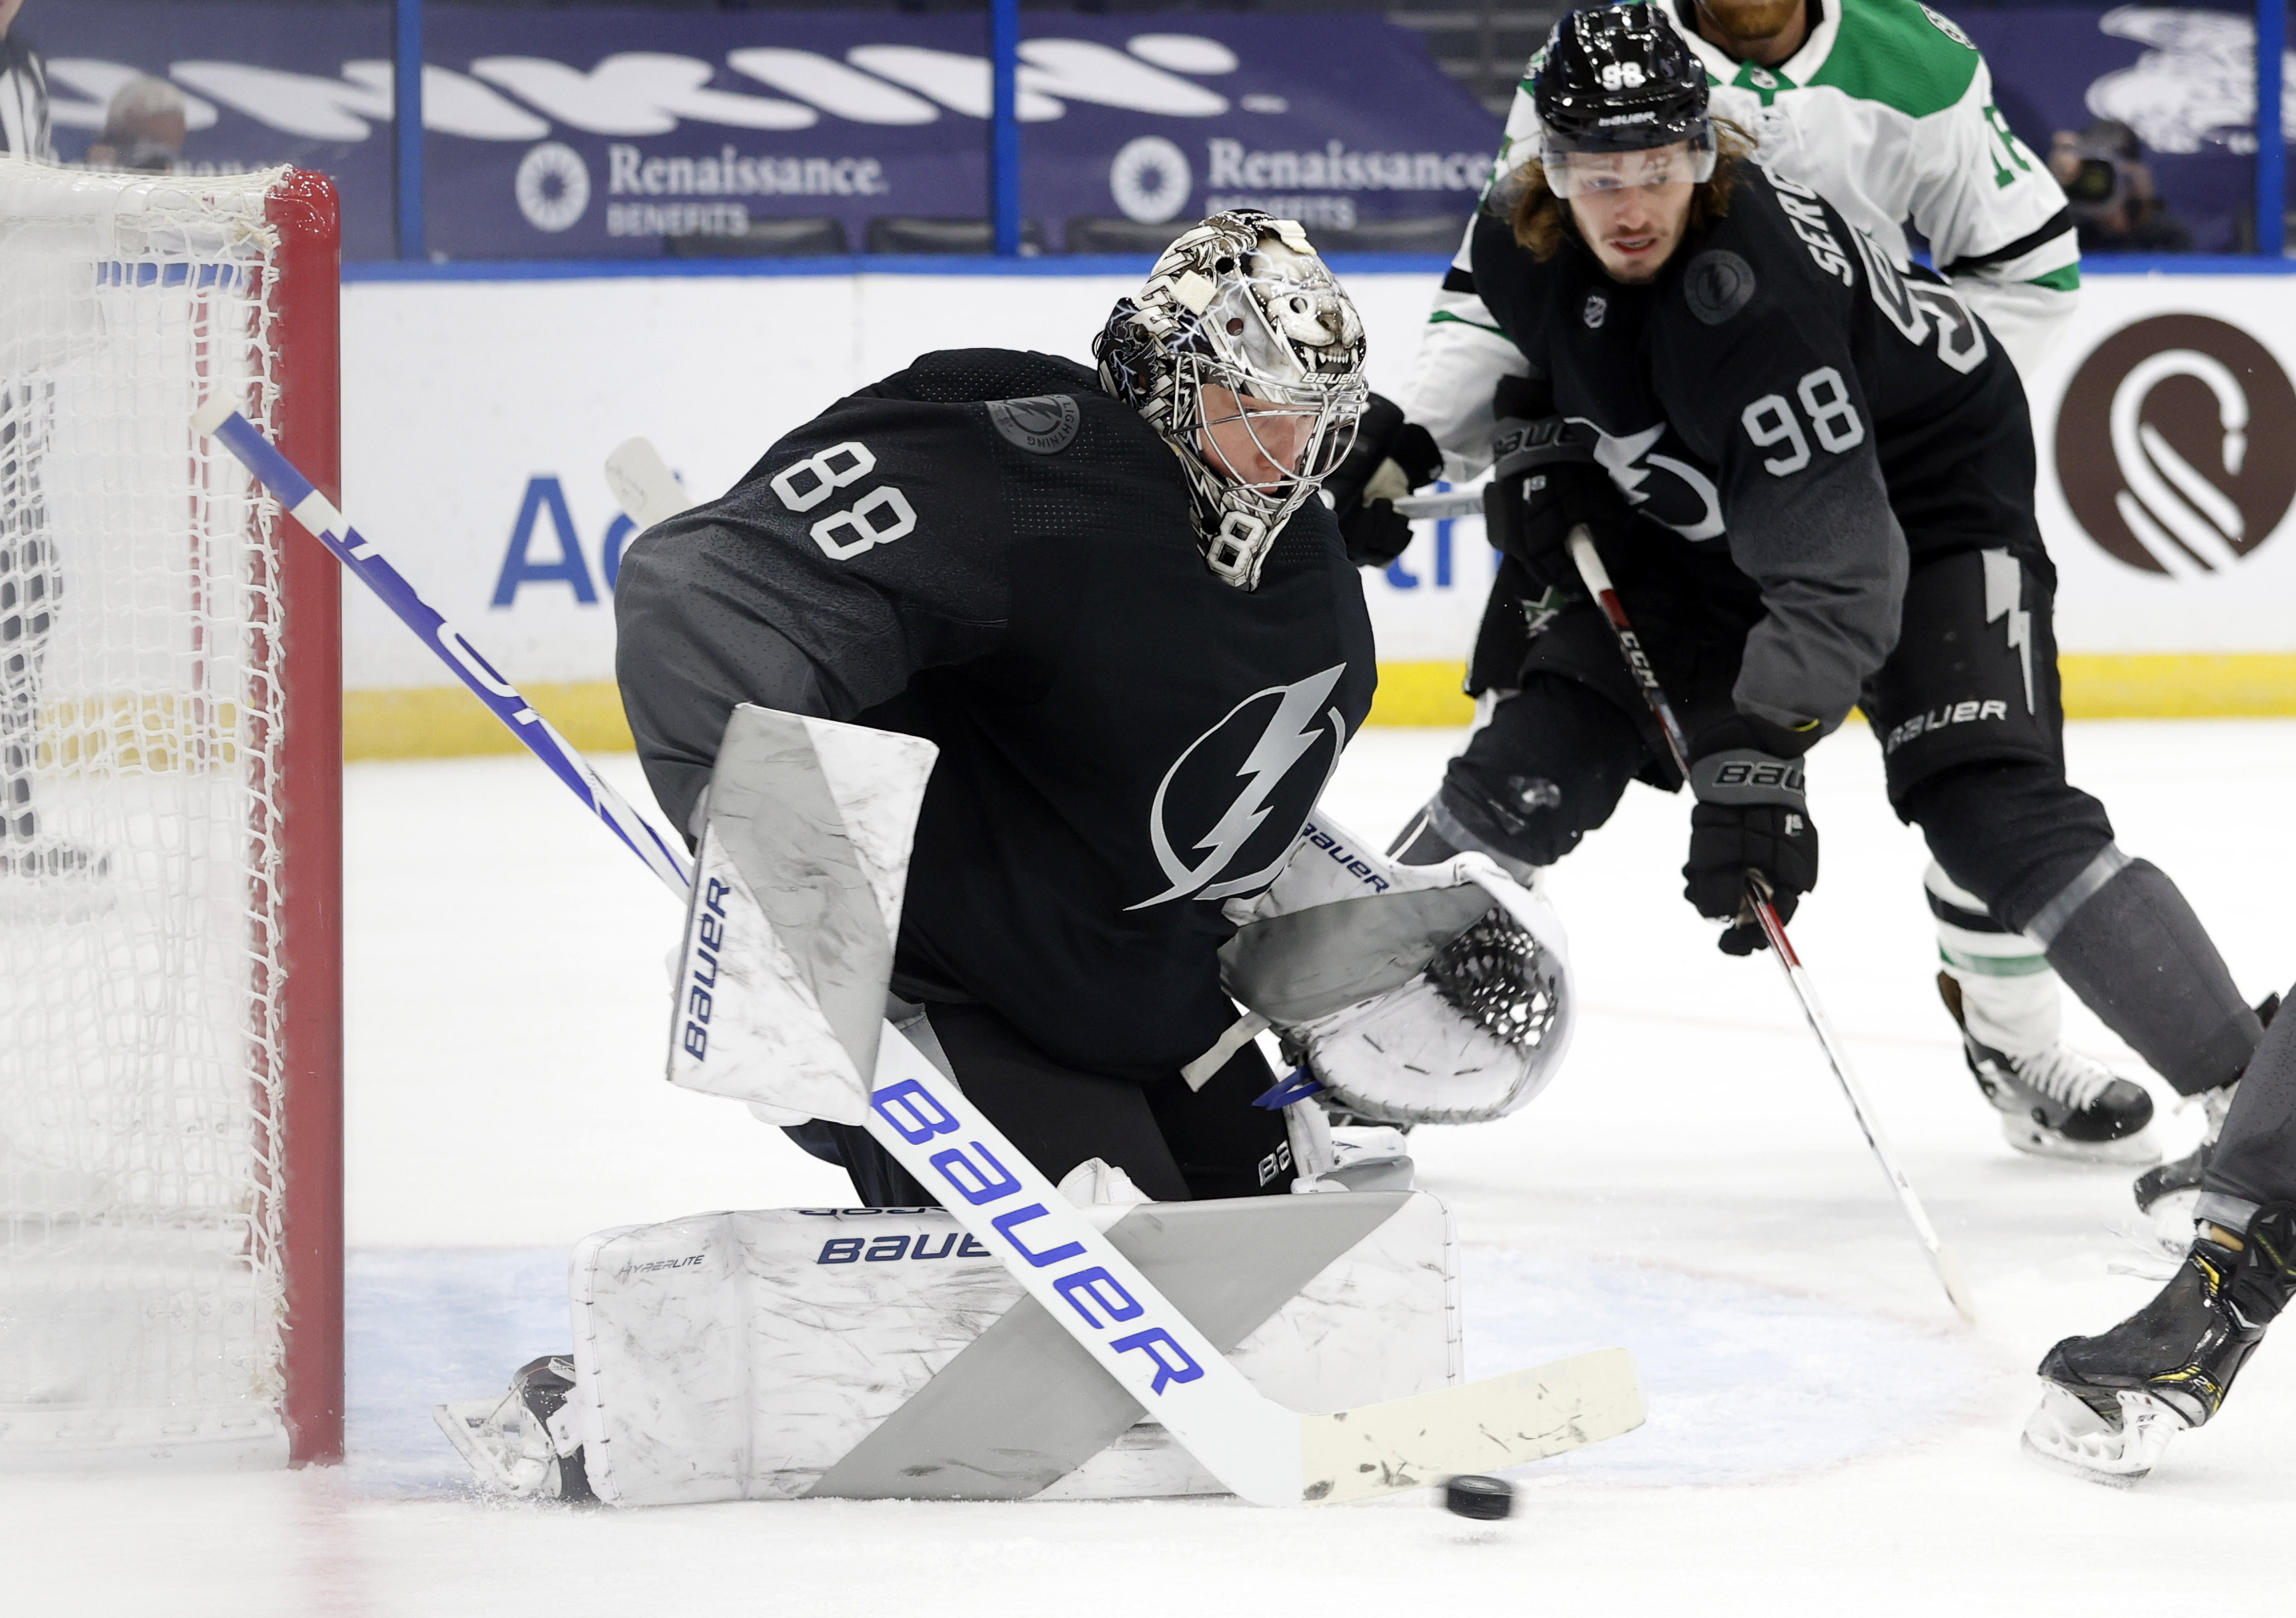 Feb 27, 2021; Tampa, Florida, USA; Tampa Bay Lightning goaltender Andrei Vasilevskiy (88) makes a save against the Dallas Stars during the second period at Amalie Arena. Mandatory Credit: Kim Klement-USA TODAY Sports